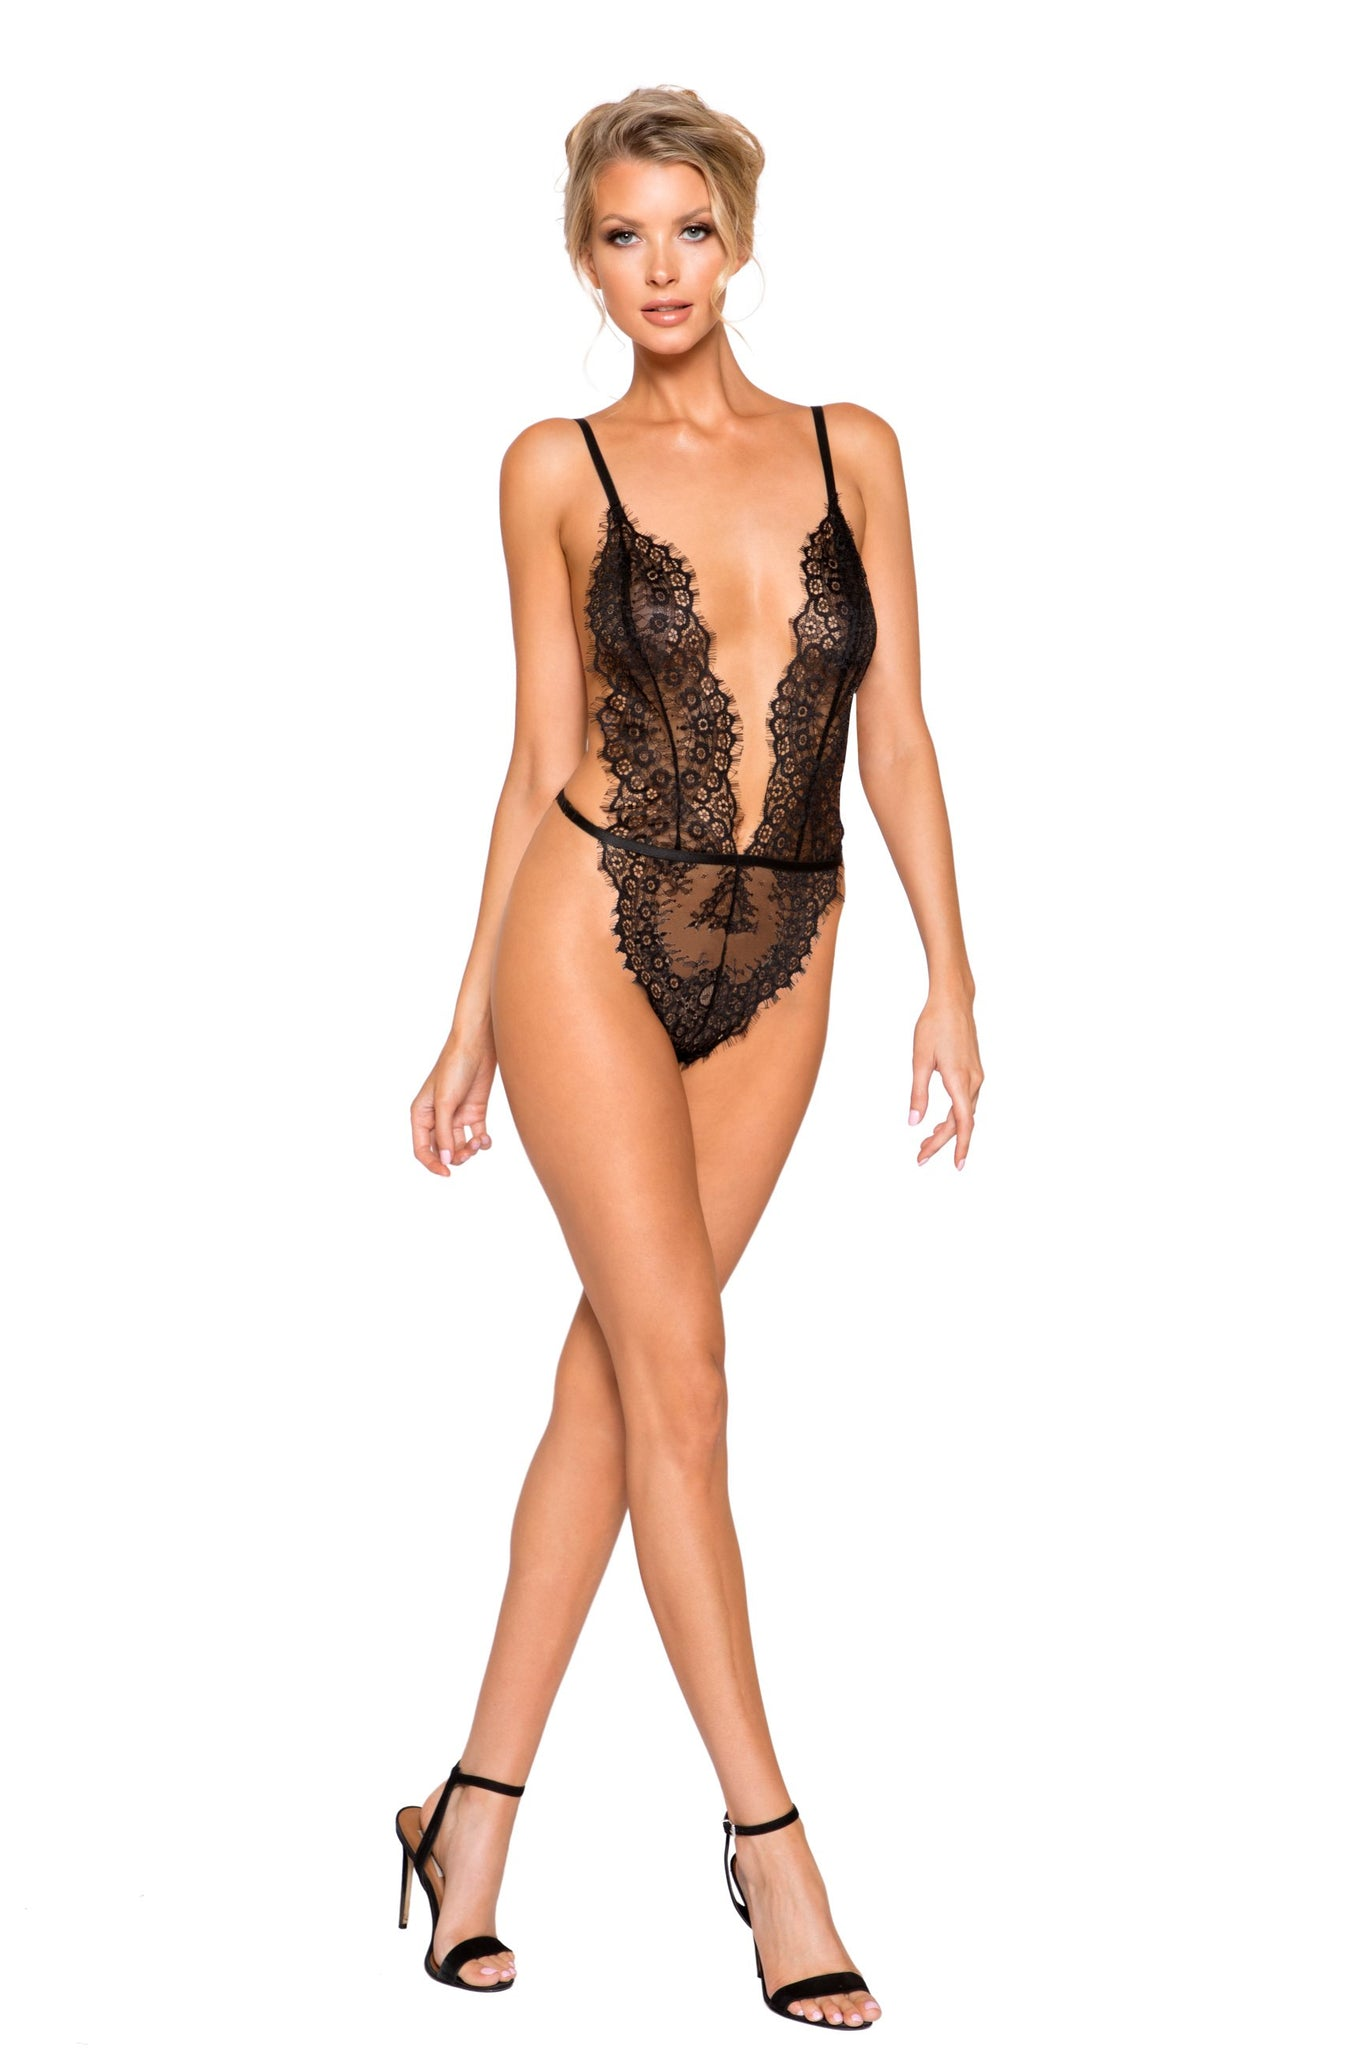 LI257 & LI258 - Simply Stunning Low Plunge & High Leg Eyelash Teddy